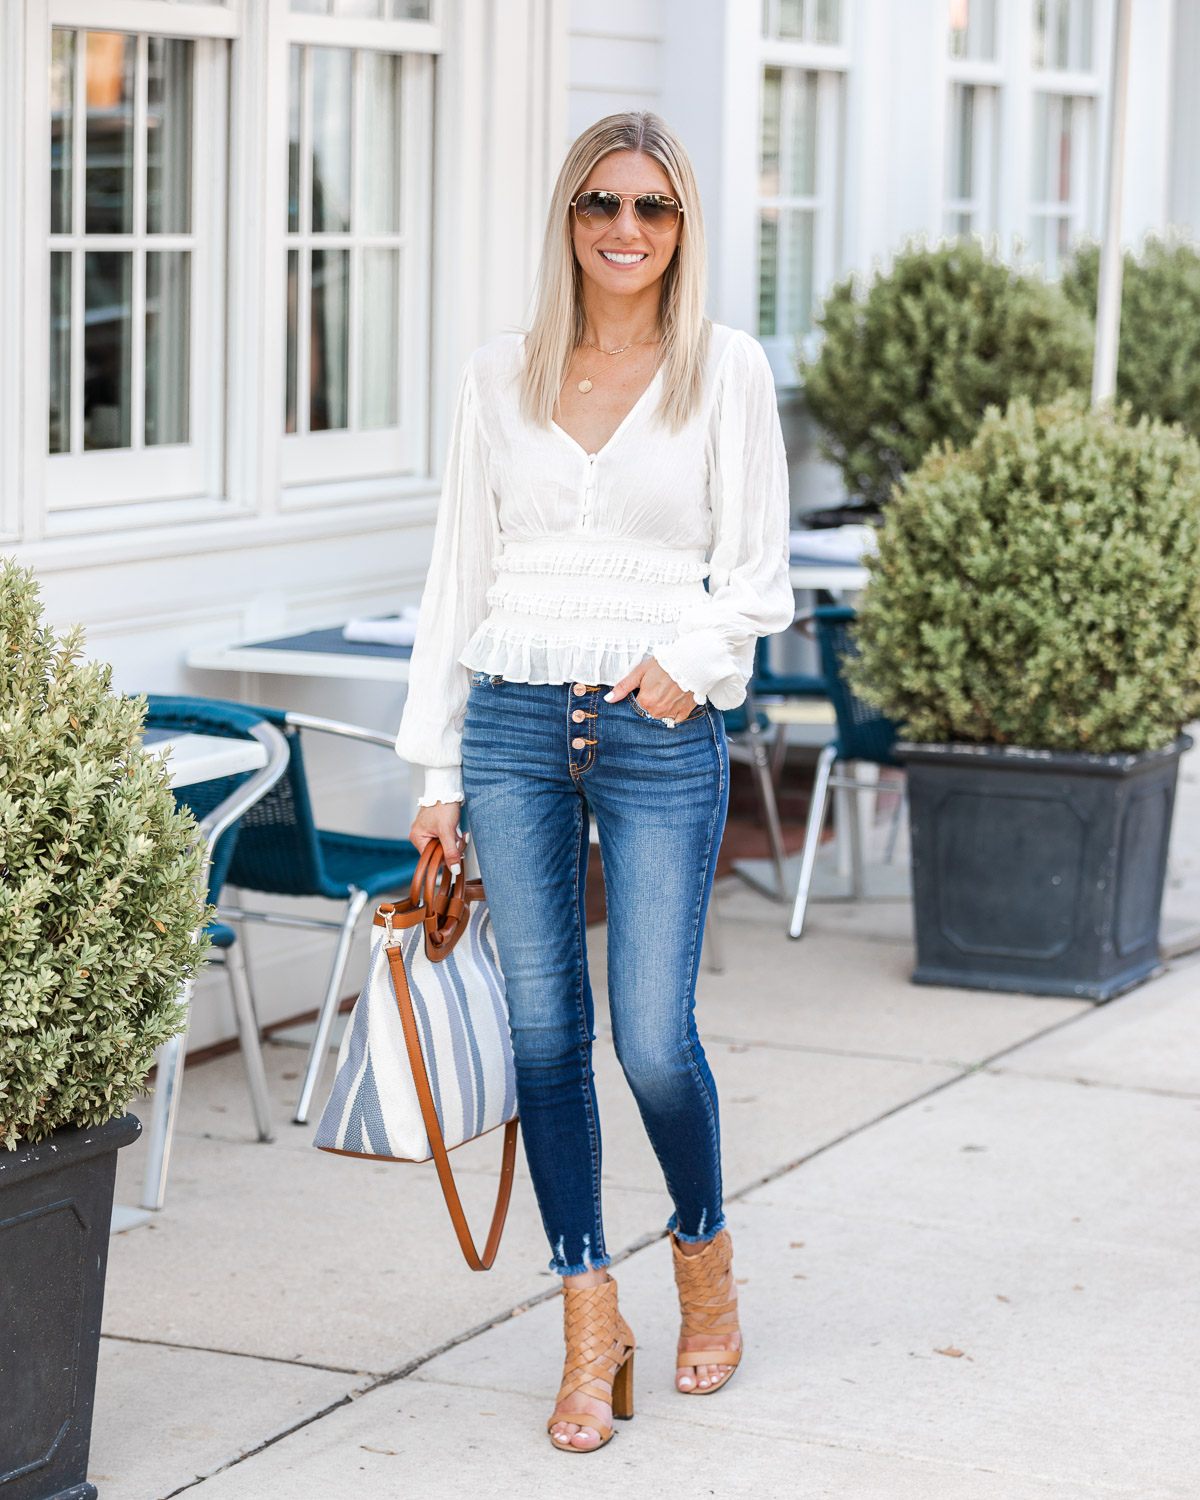 Casual Fall Look and Striped Details